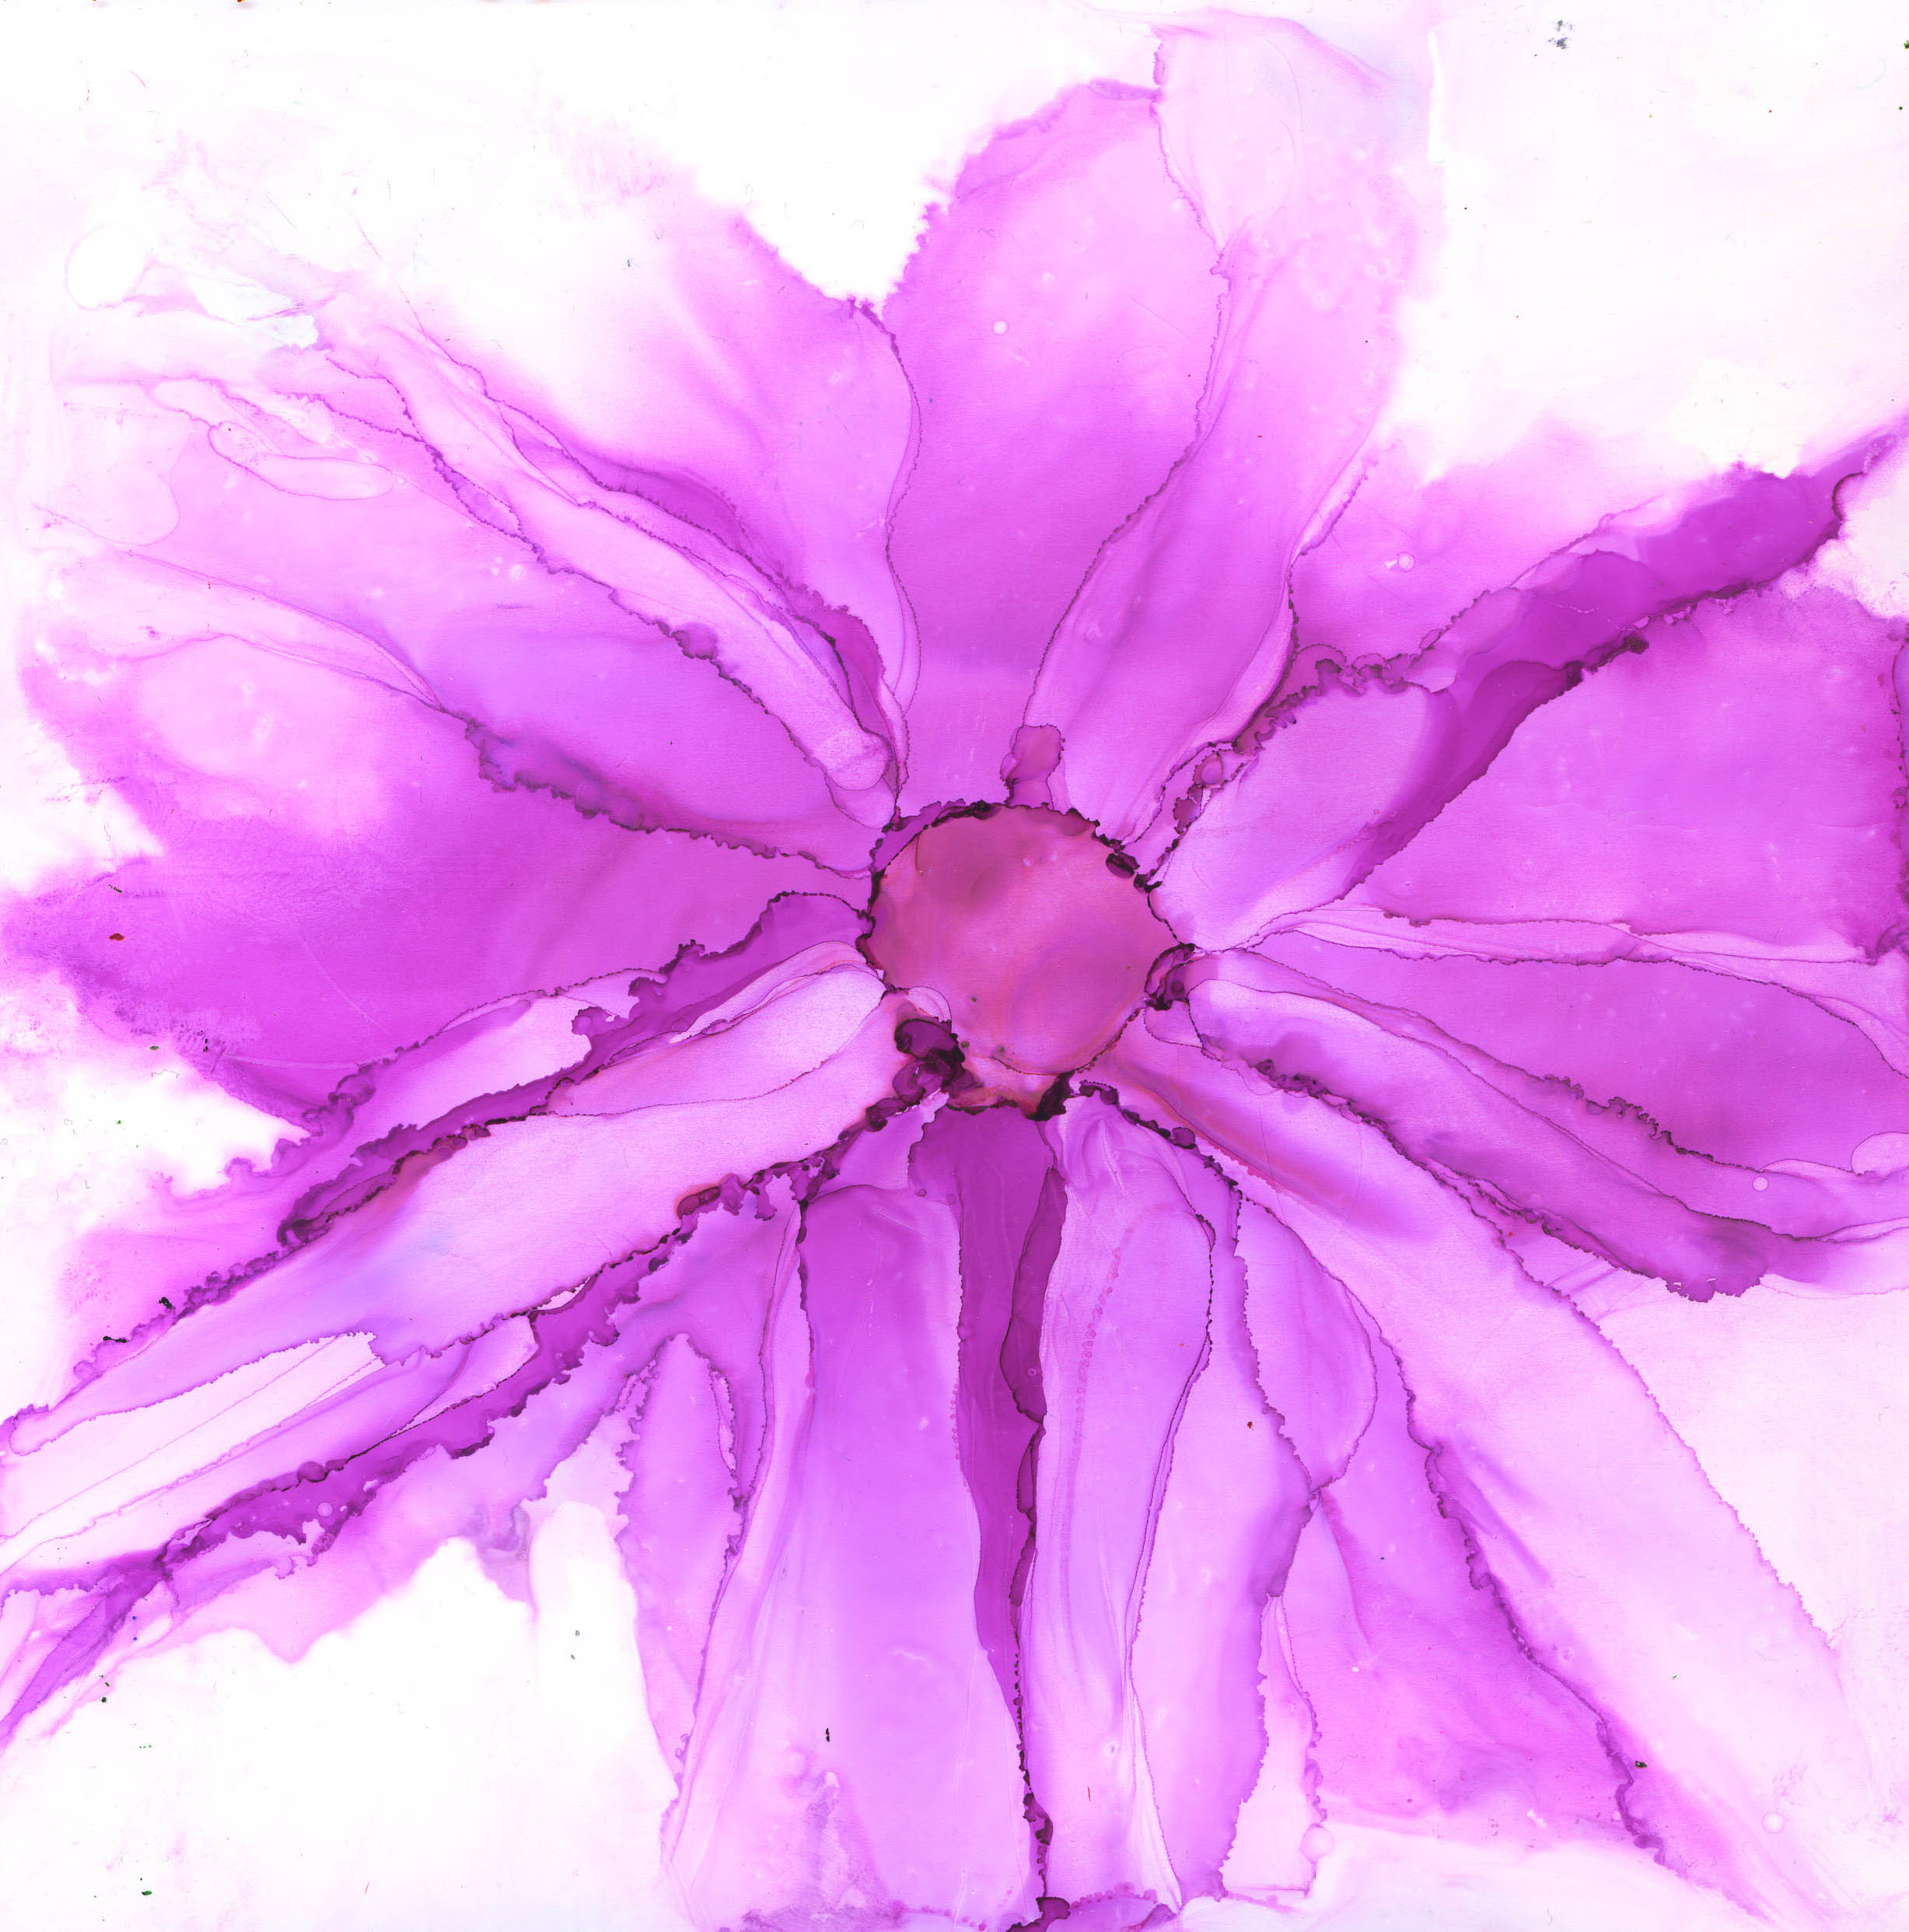 Magenta Flower - Alcohol Ink 8 X 8 $100